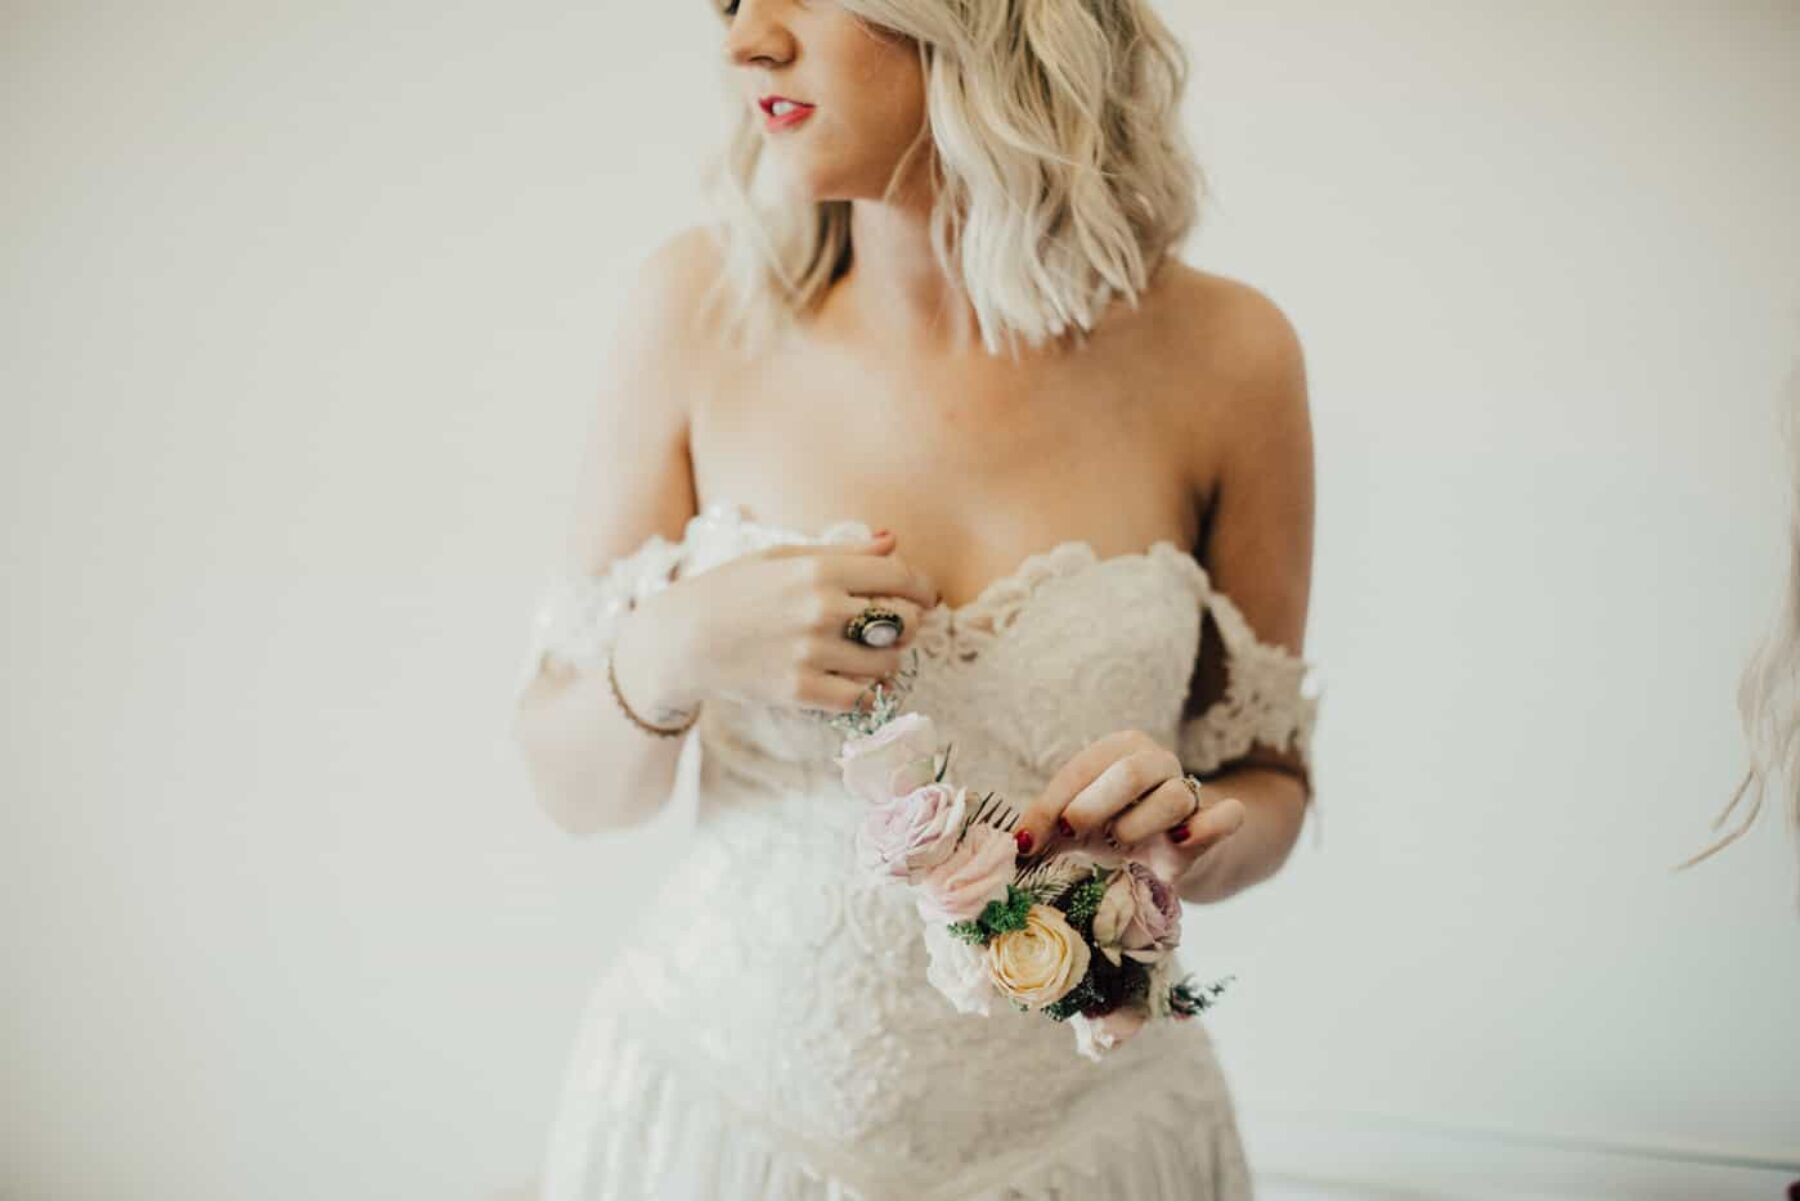 Boho bride in vintage lace strapless wedding dress